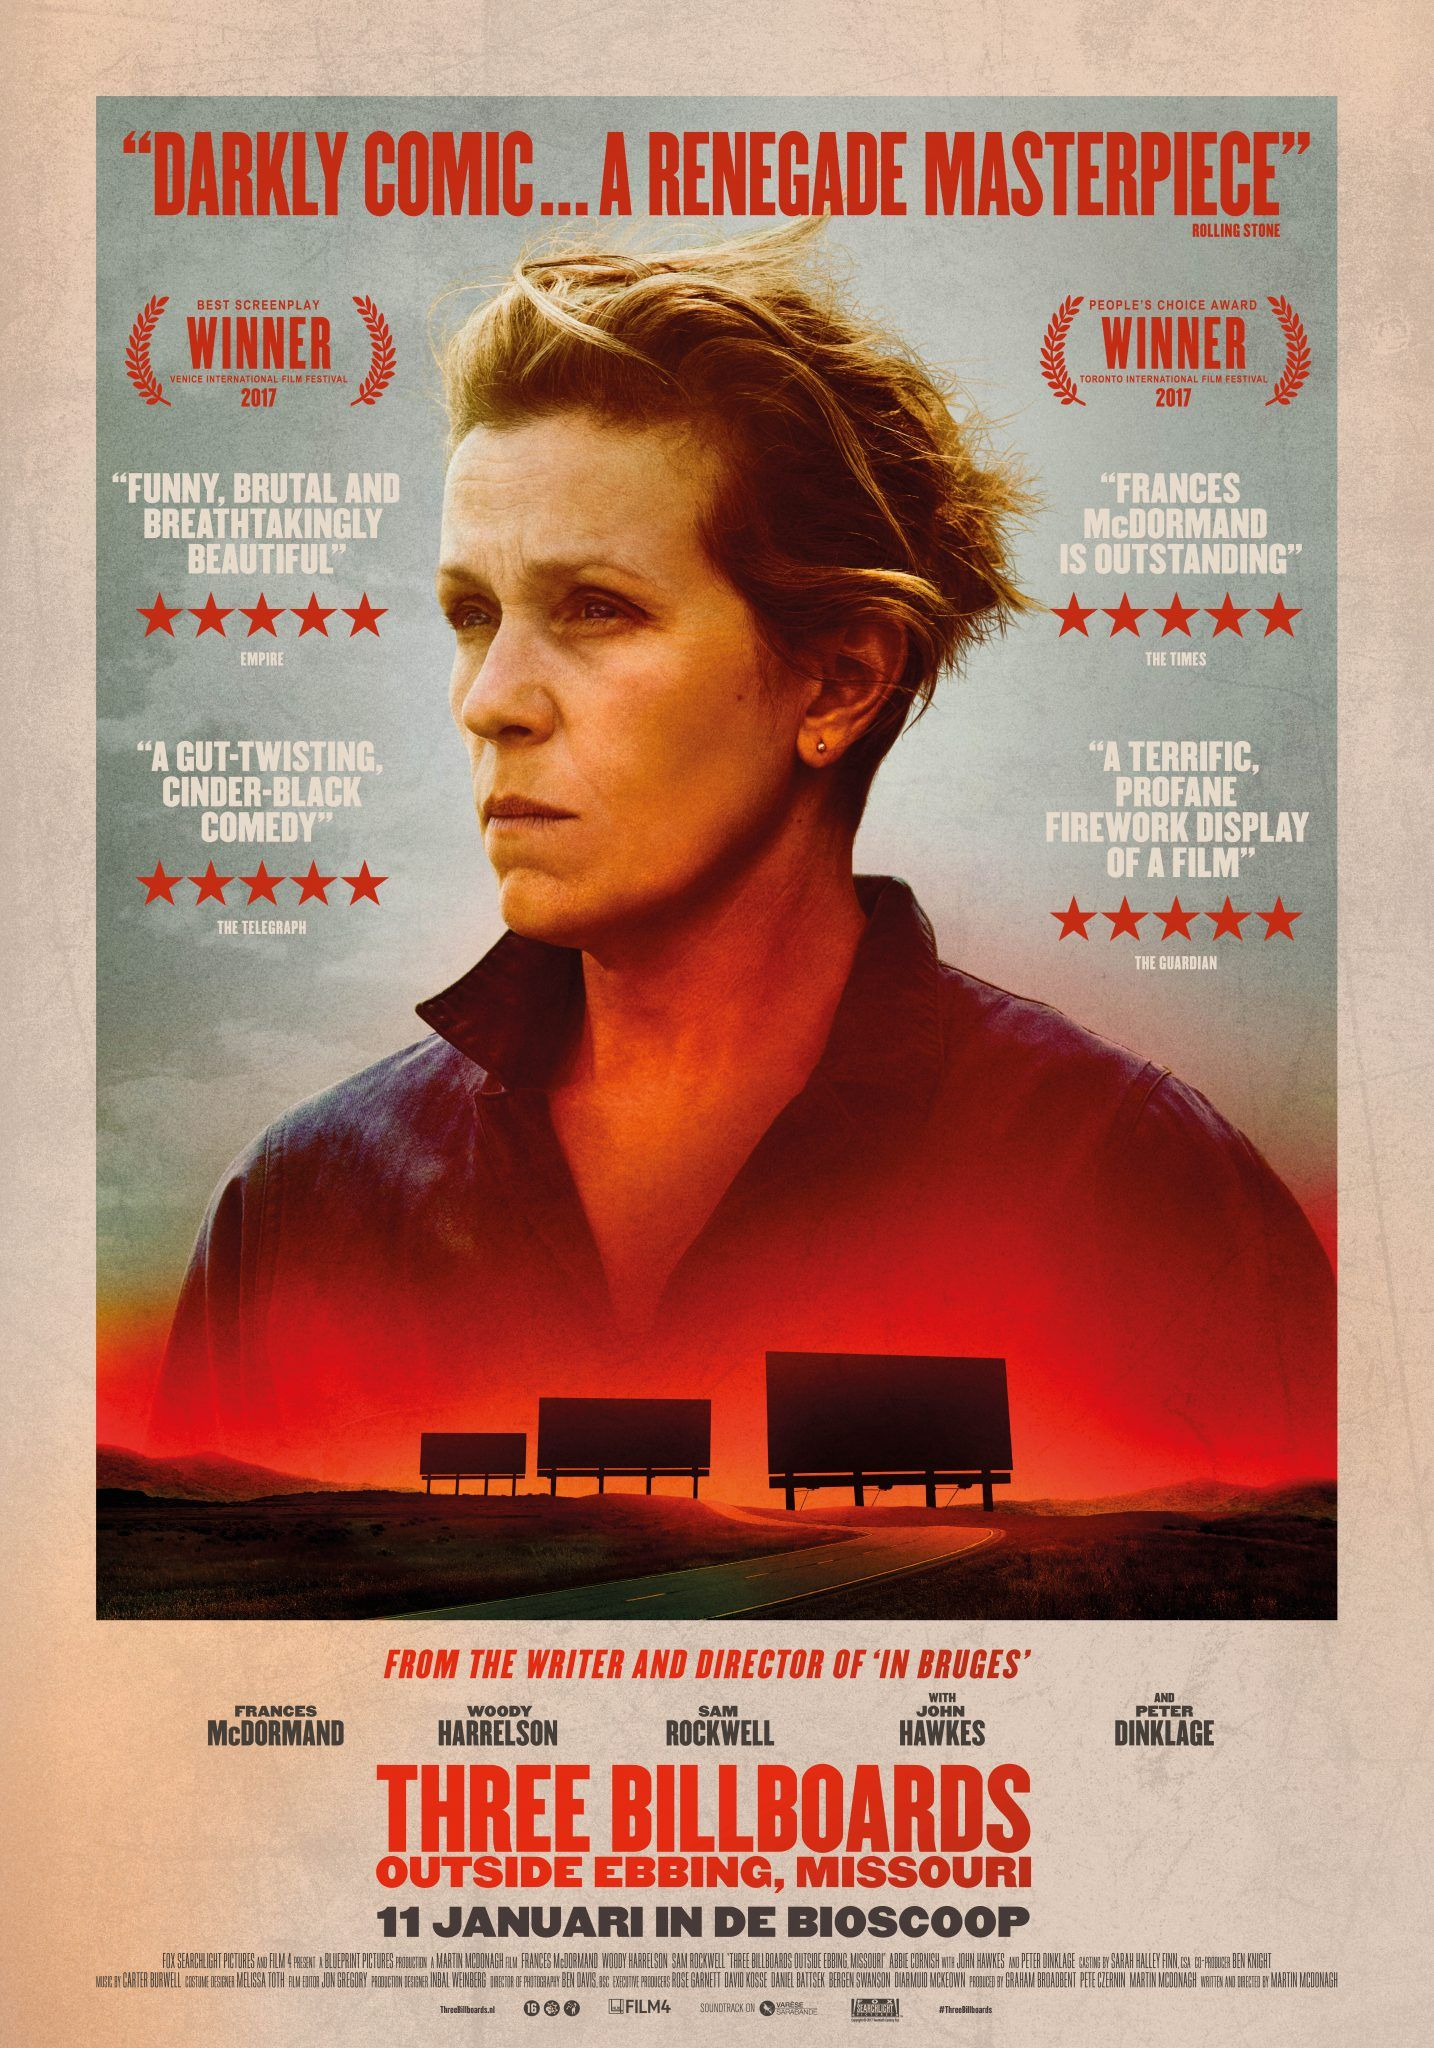 Absolutely brilliant - funny, sad, poignant, bad, epic, best I've seen in a while. Definite Oscar contender.